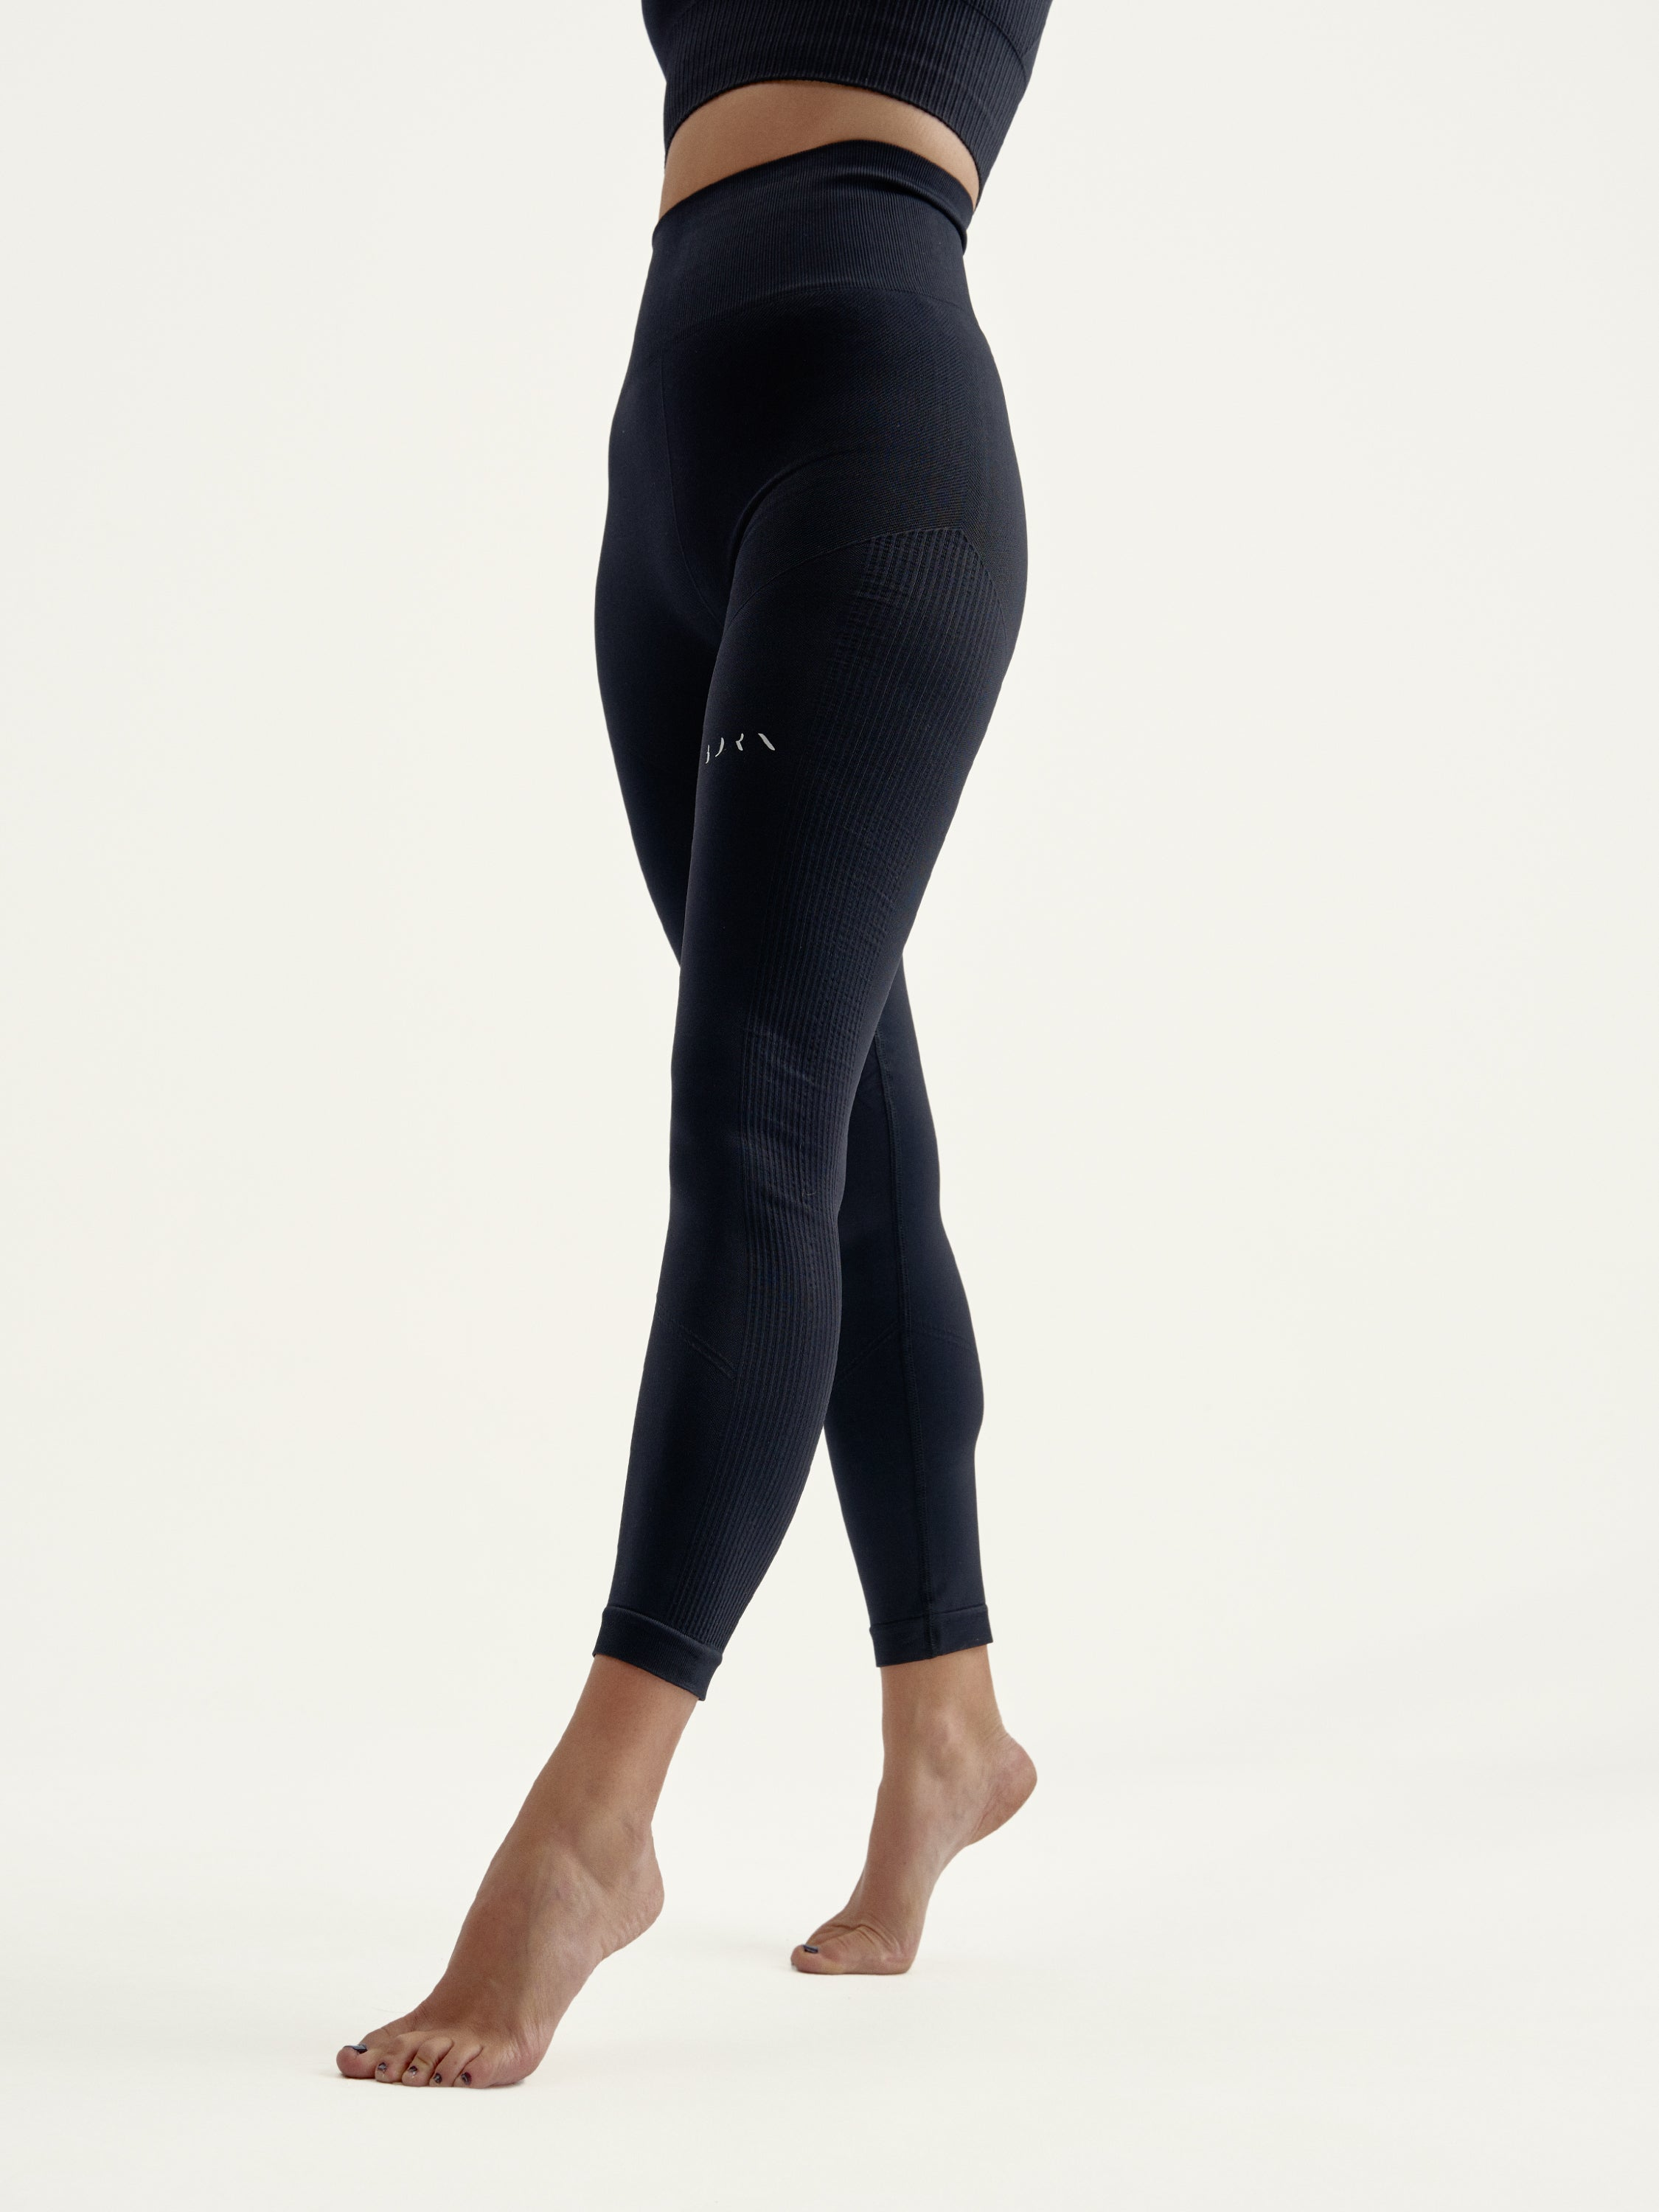 Legging Flow Black